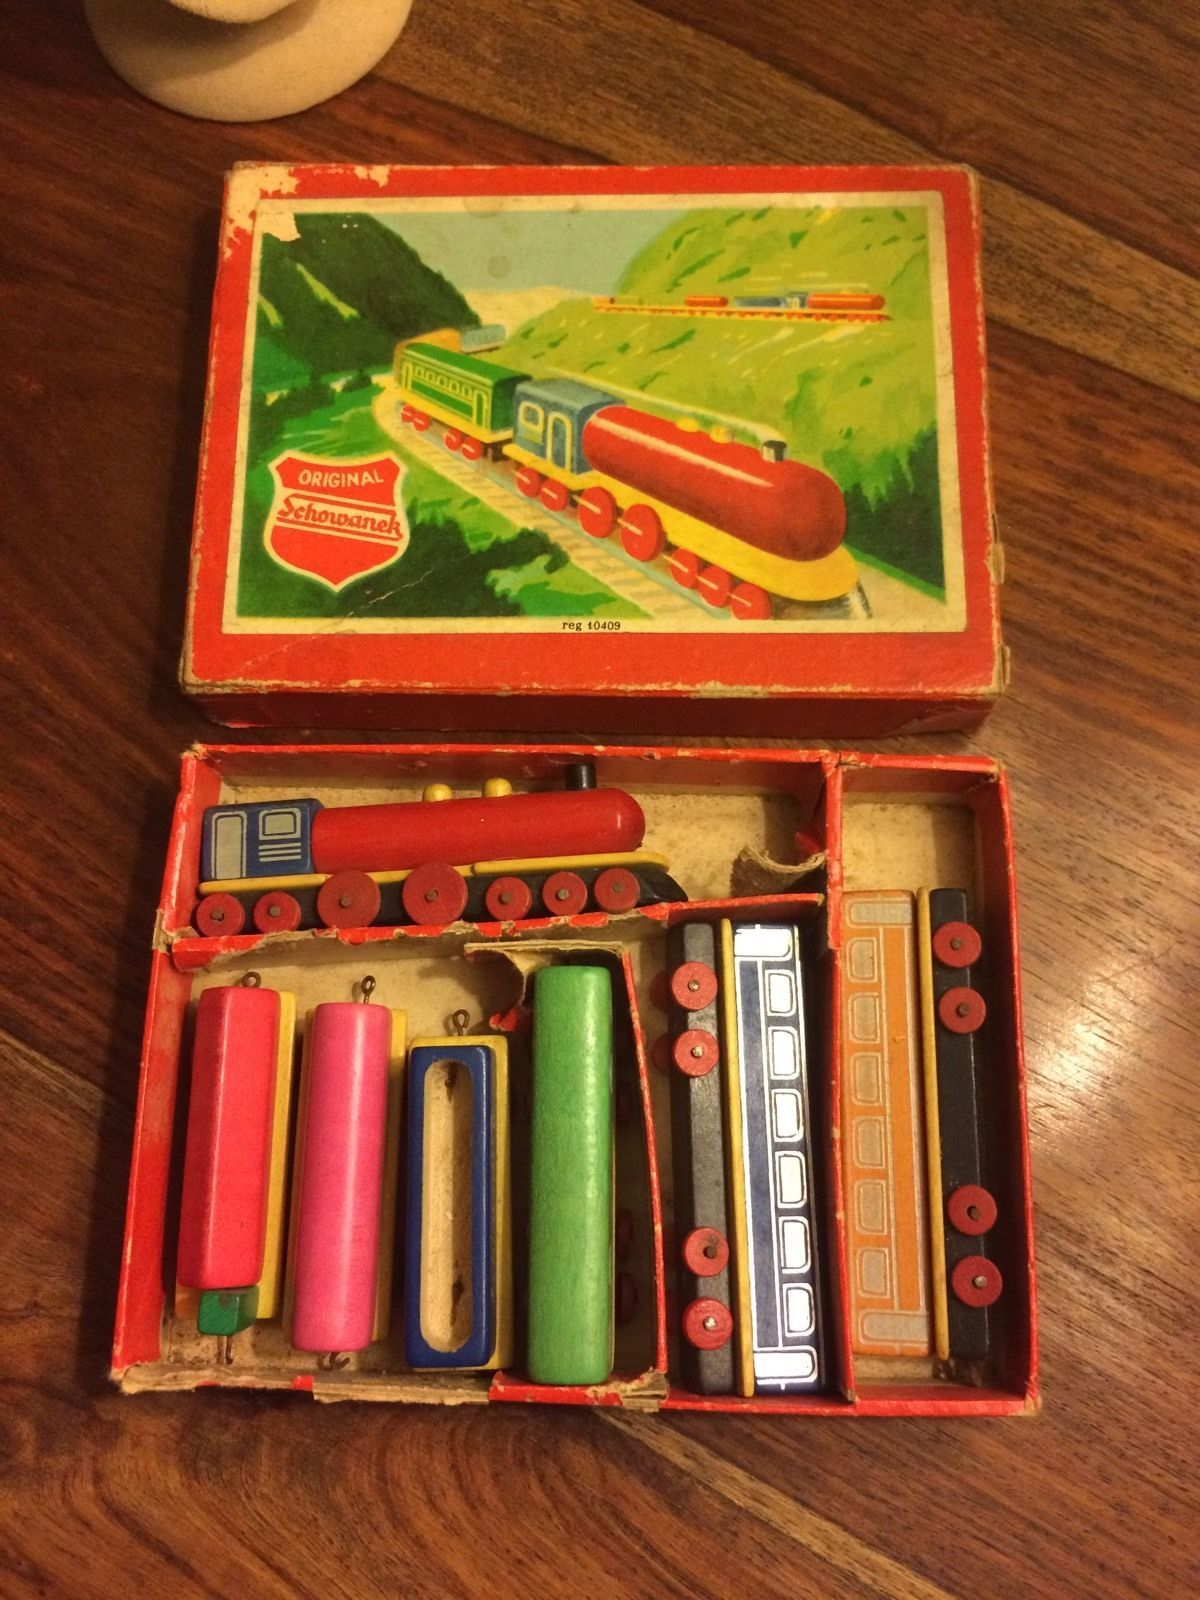 Vintage Schowanek German Wooden Toy Train Set In Box Reg